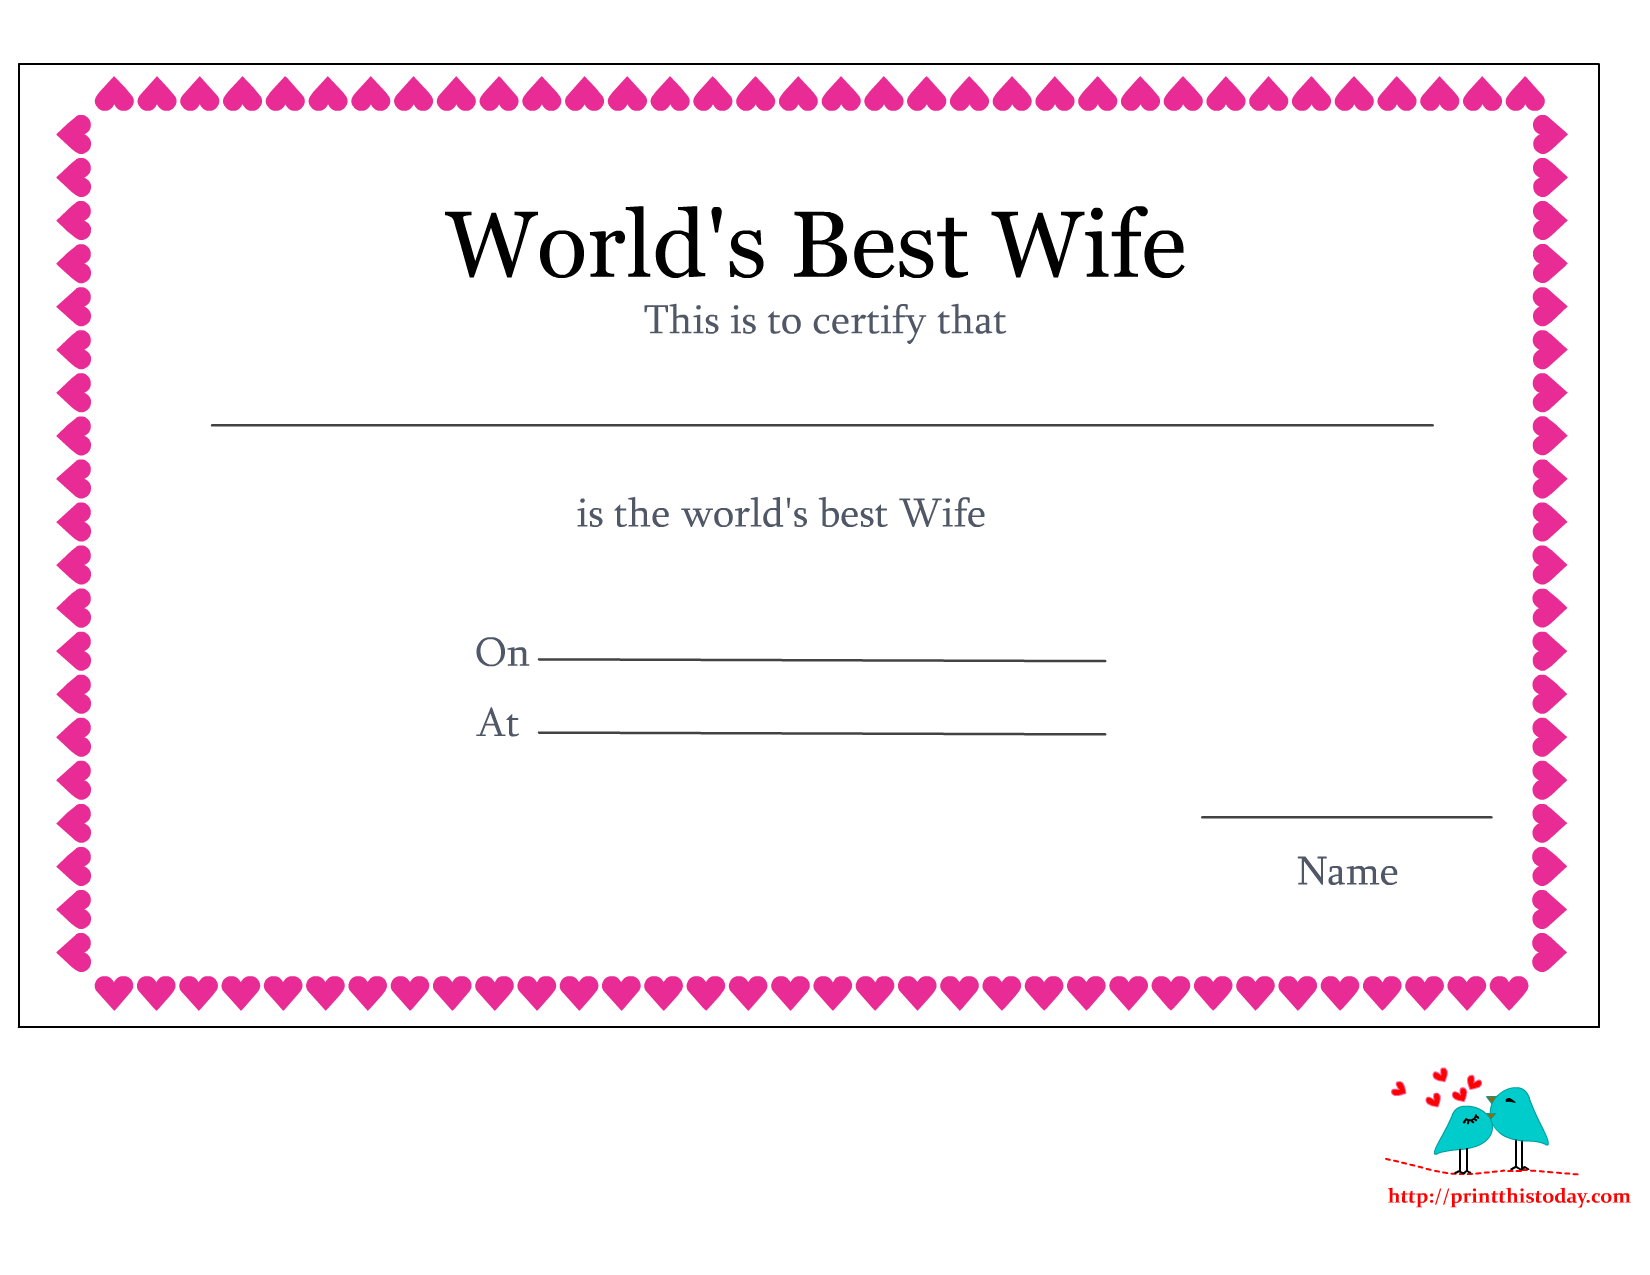 Free Printable World's Best Wife Certificates